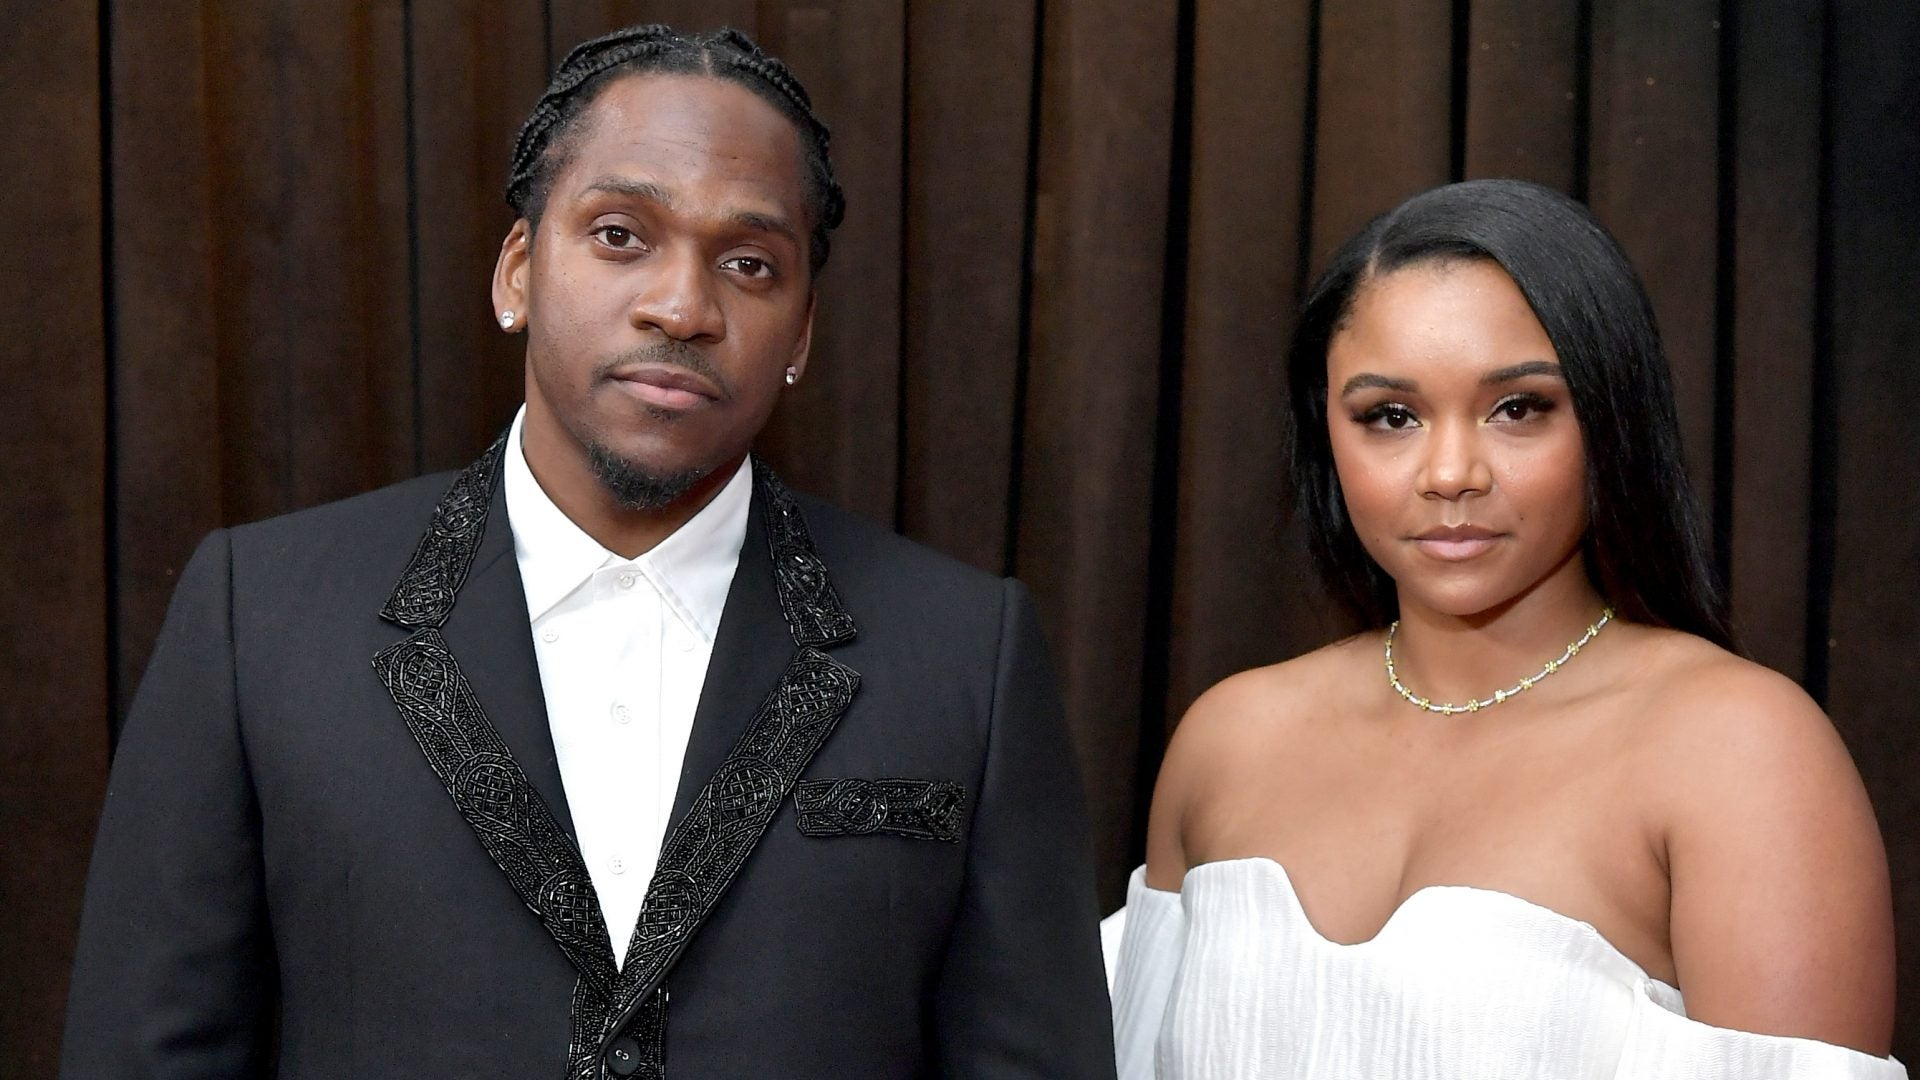 Pusha T and Wife Virginia Williams Are Expecting Their First Child Together